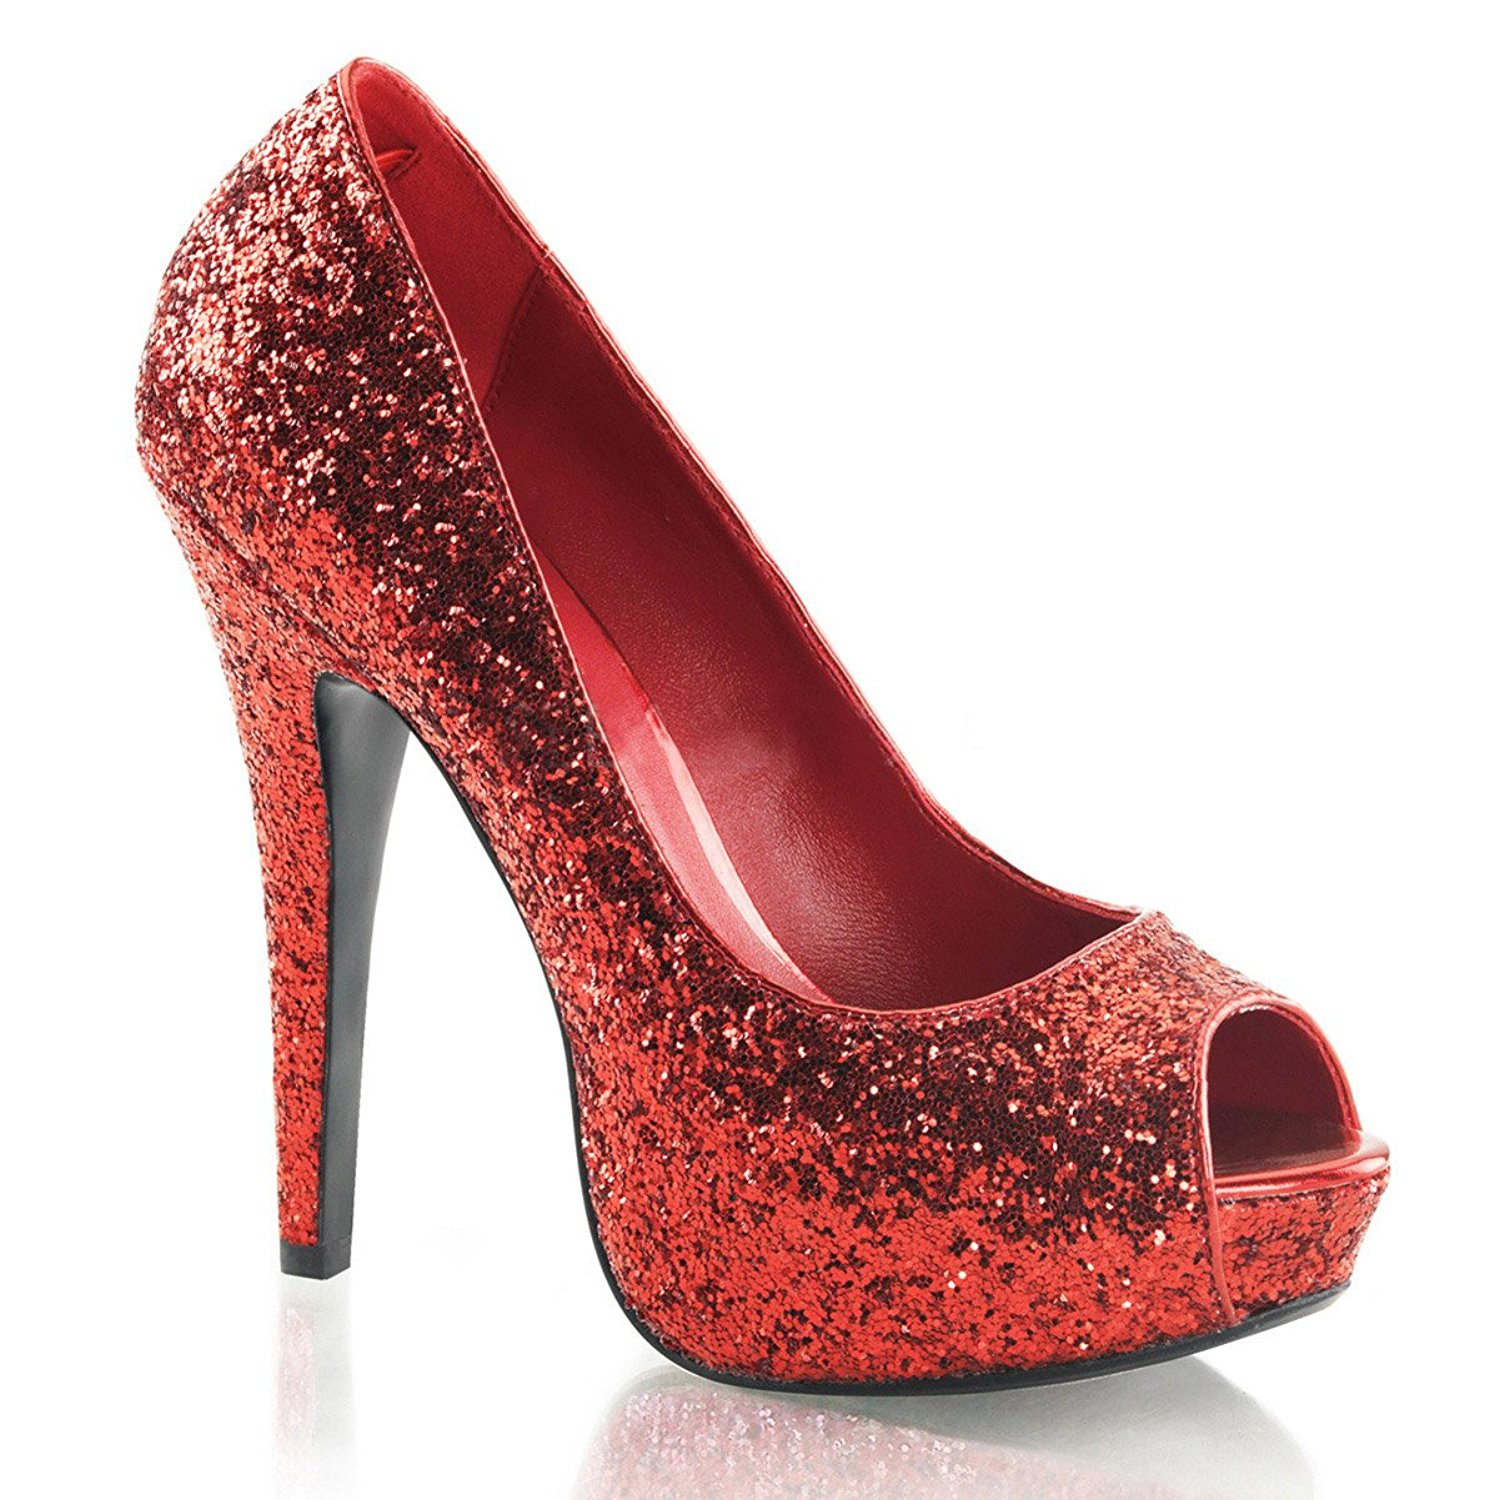 Red Sparkly High Heels MnOUzoHW